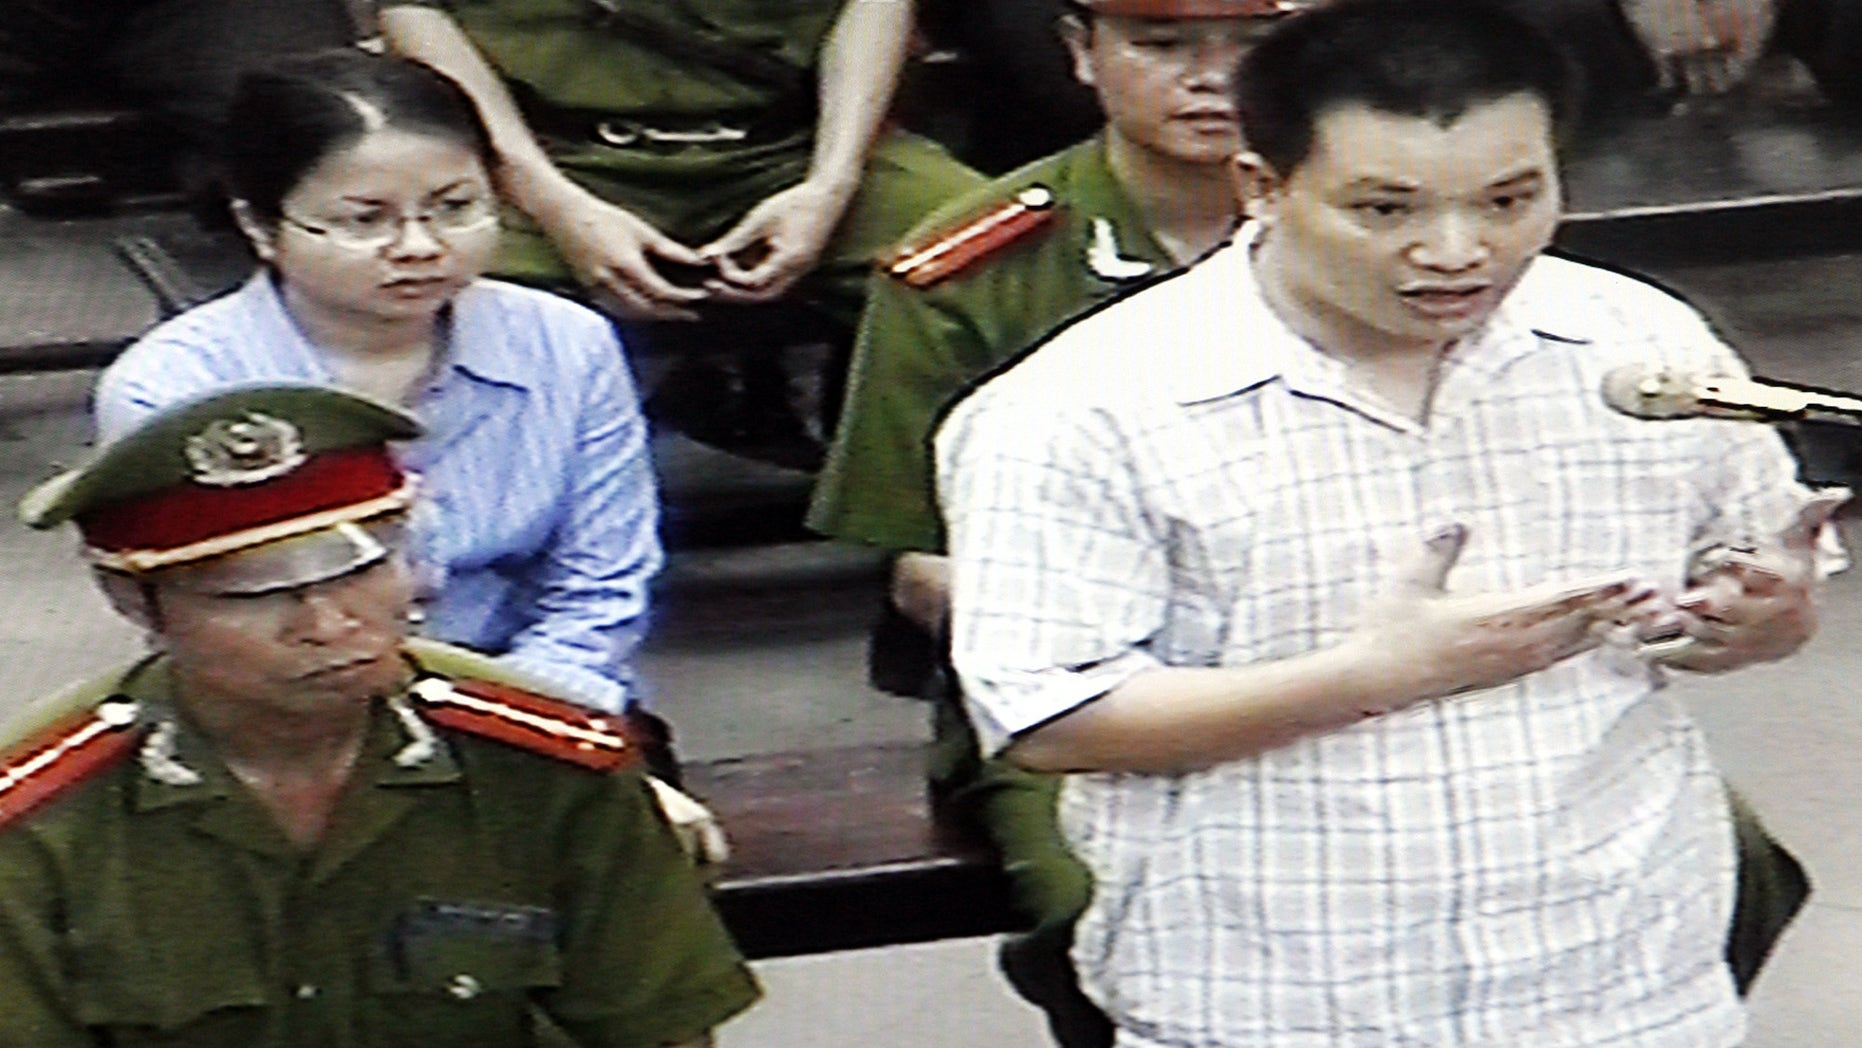 FILE - in this Friday, May 11, 2013 file photo, originally taken from TV footage, Nguyen Van Dai, right, testifies at a court as his fellow human rights activist Le Thi Cong Nhan, left in second row, listens during their trial in Hanoi, Vietnam. Deputy Secretary of State Dan Baer wanted to meet Nguyen Van Dai and Pham Hong Son, two dissidents well known to Western governments and rights organizations when he was in Vietnam. They have each served four-year prison terms in the past. They are under frequent surveillance and are often harassed, yet remain publicly committed to challenging the party, prepared to accept the risks to them and their family in doing so. (AP Photo)